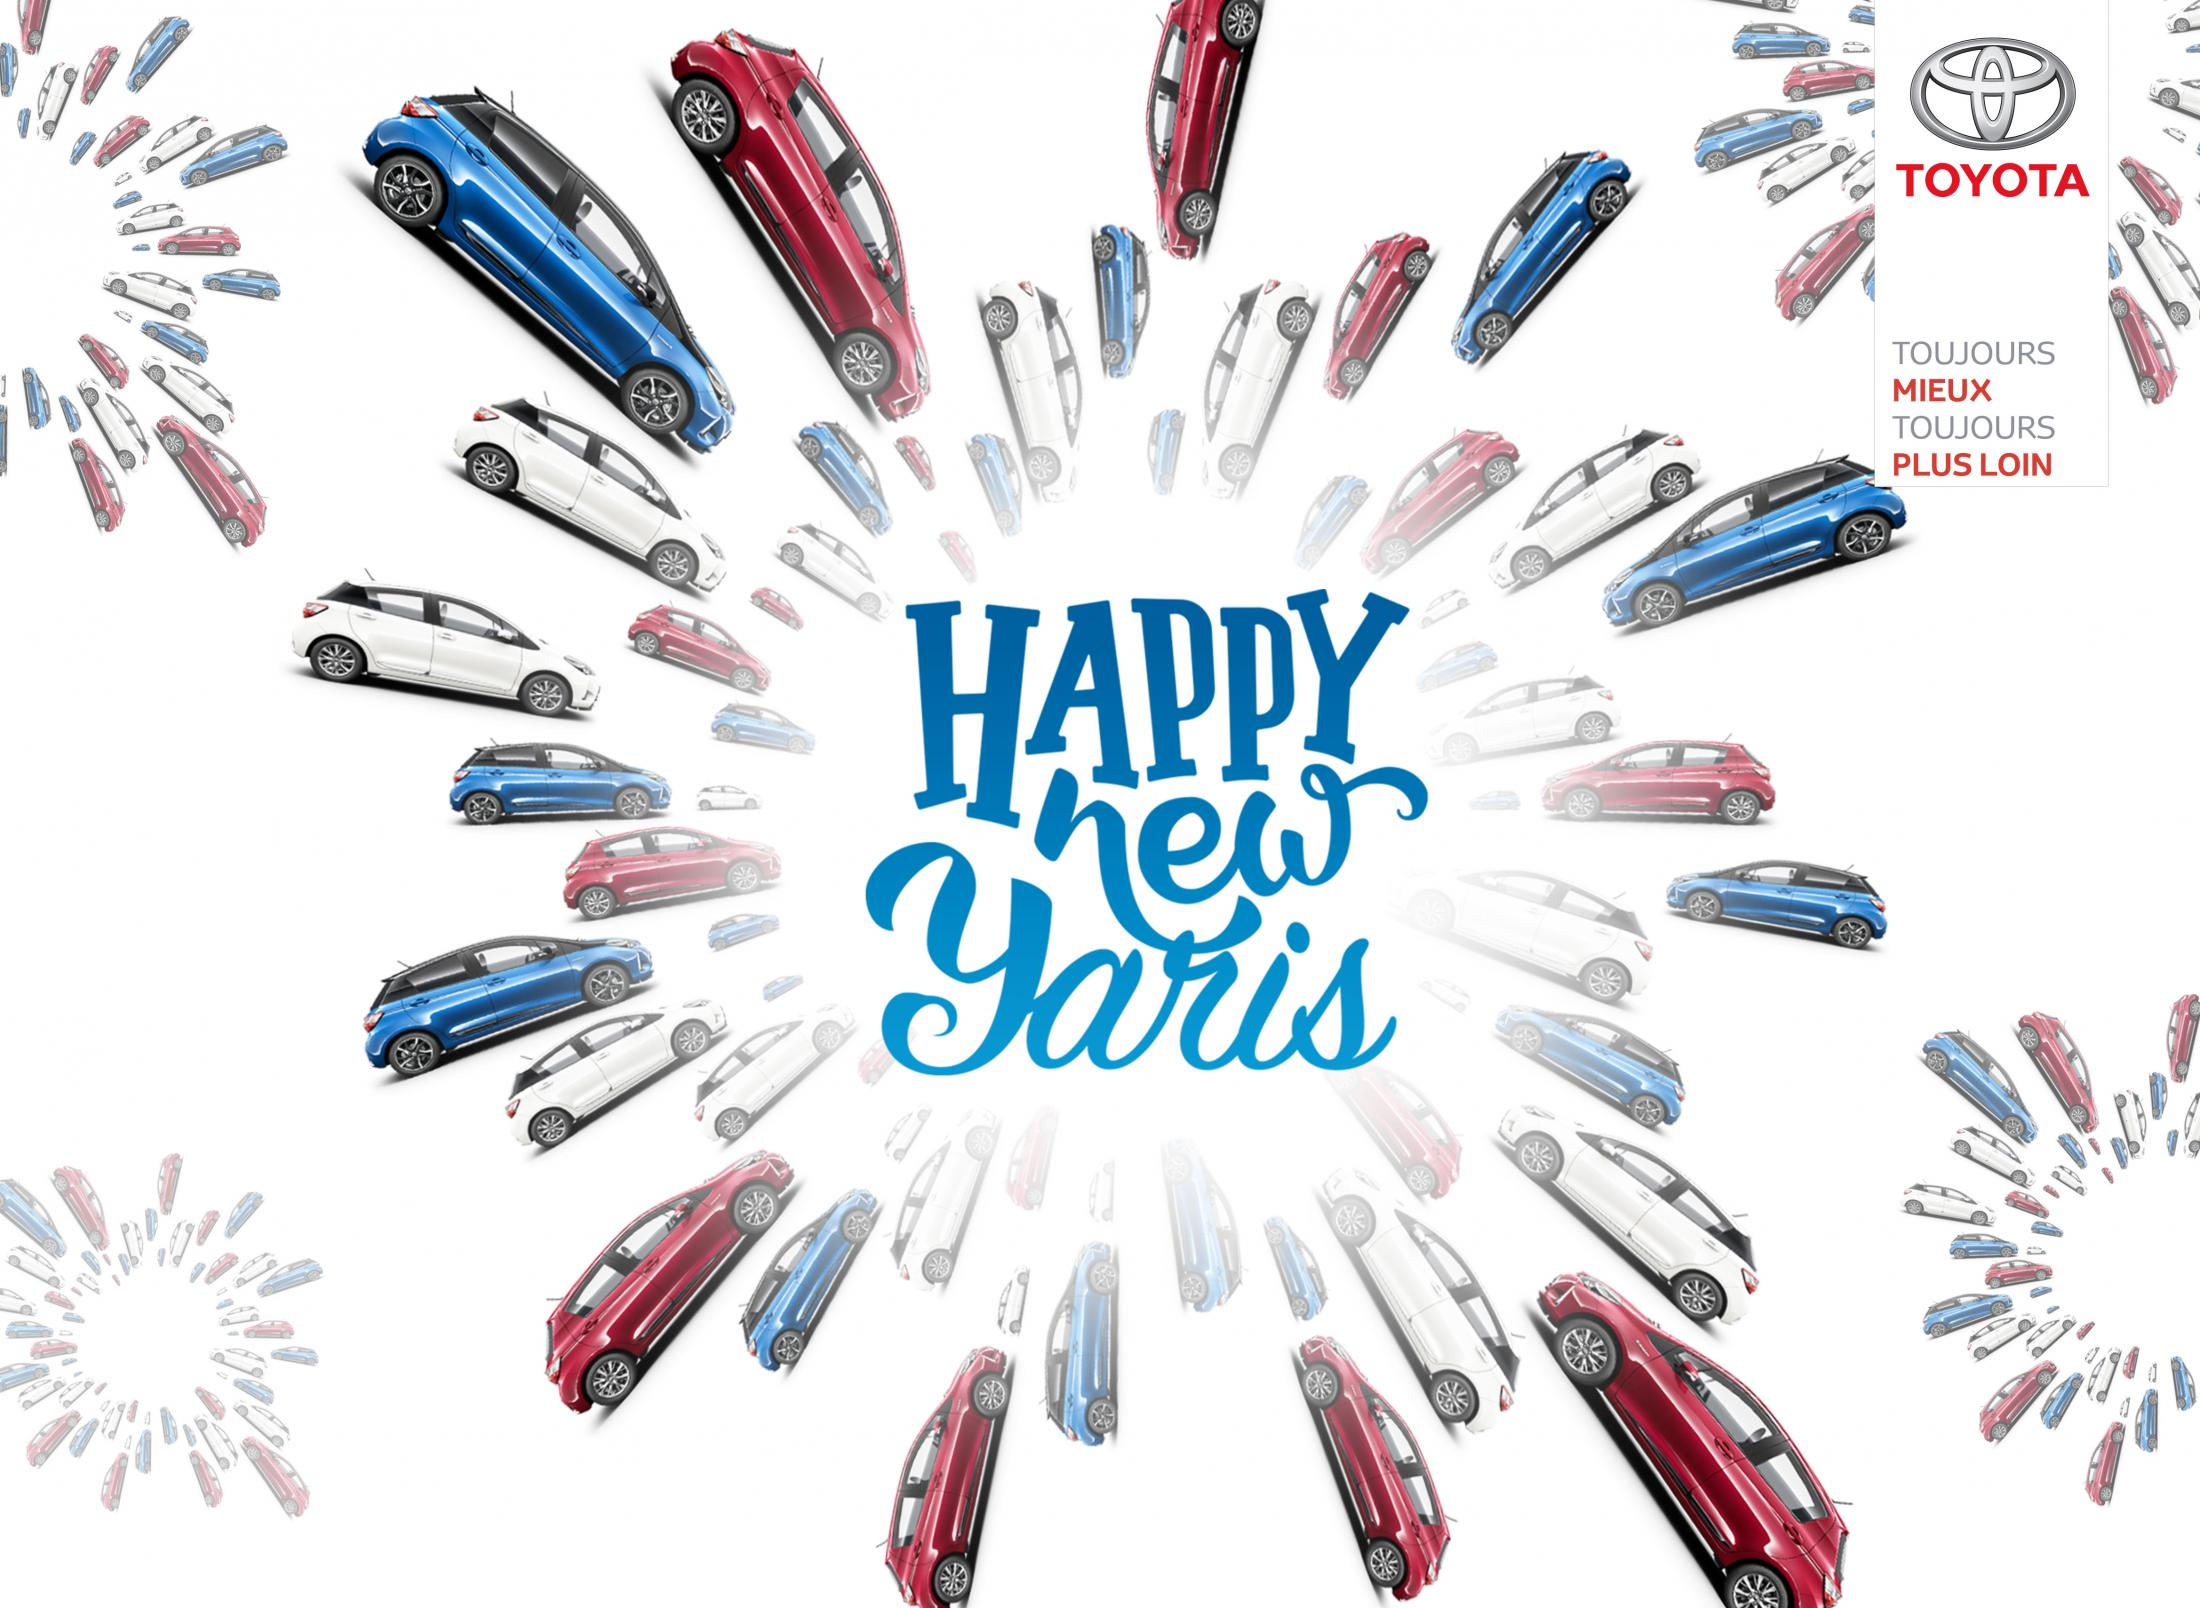 Toyota Digital Ad - Happy New Yaris